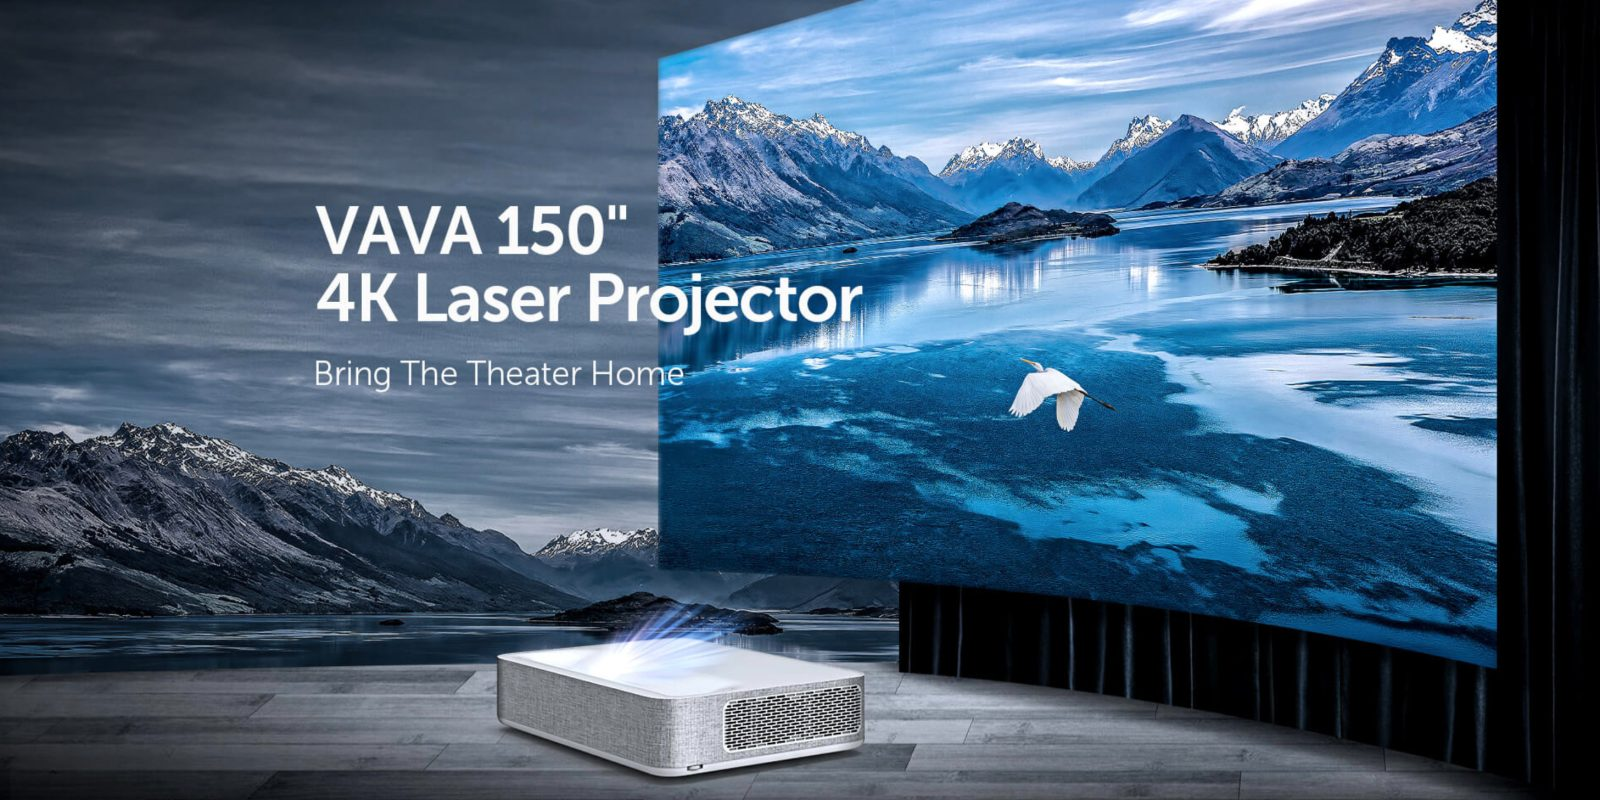 Vava introduces $3,500 short-throw 4K HDR projector - 9to5Toys